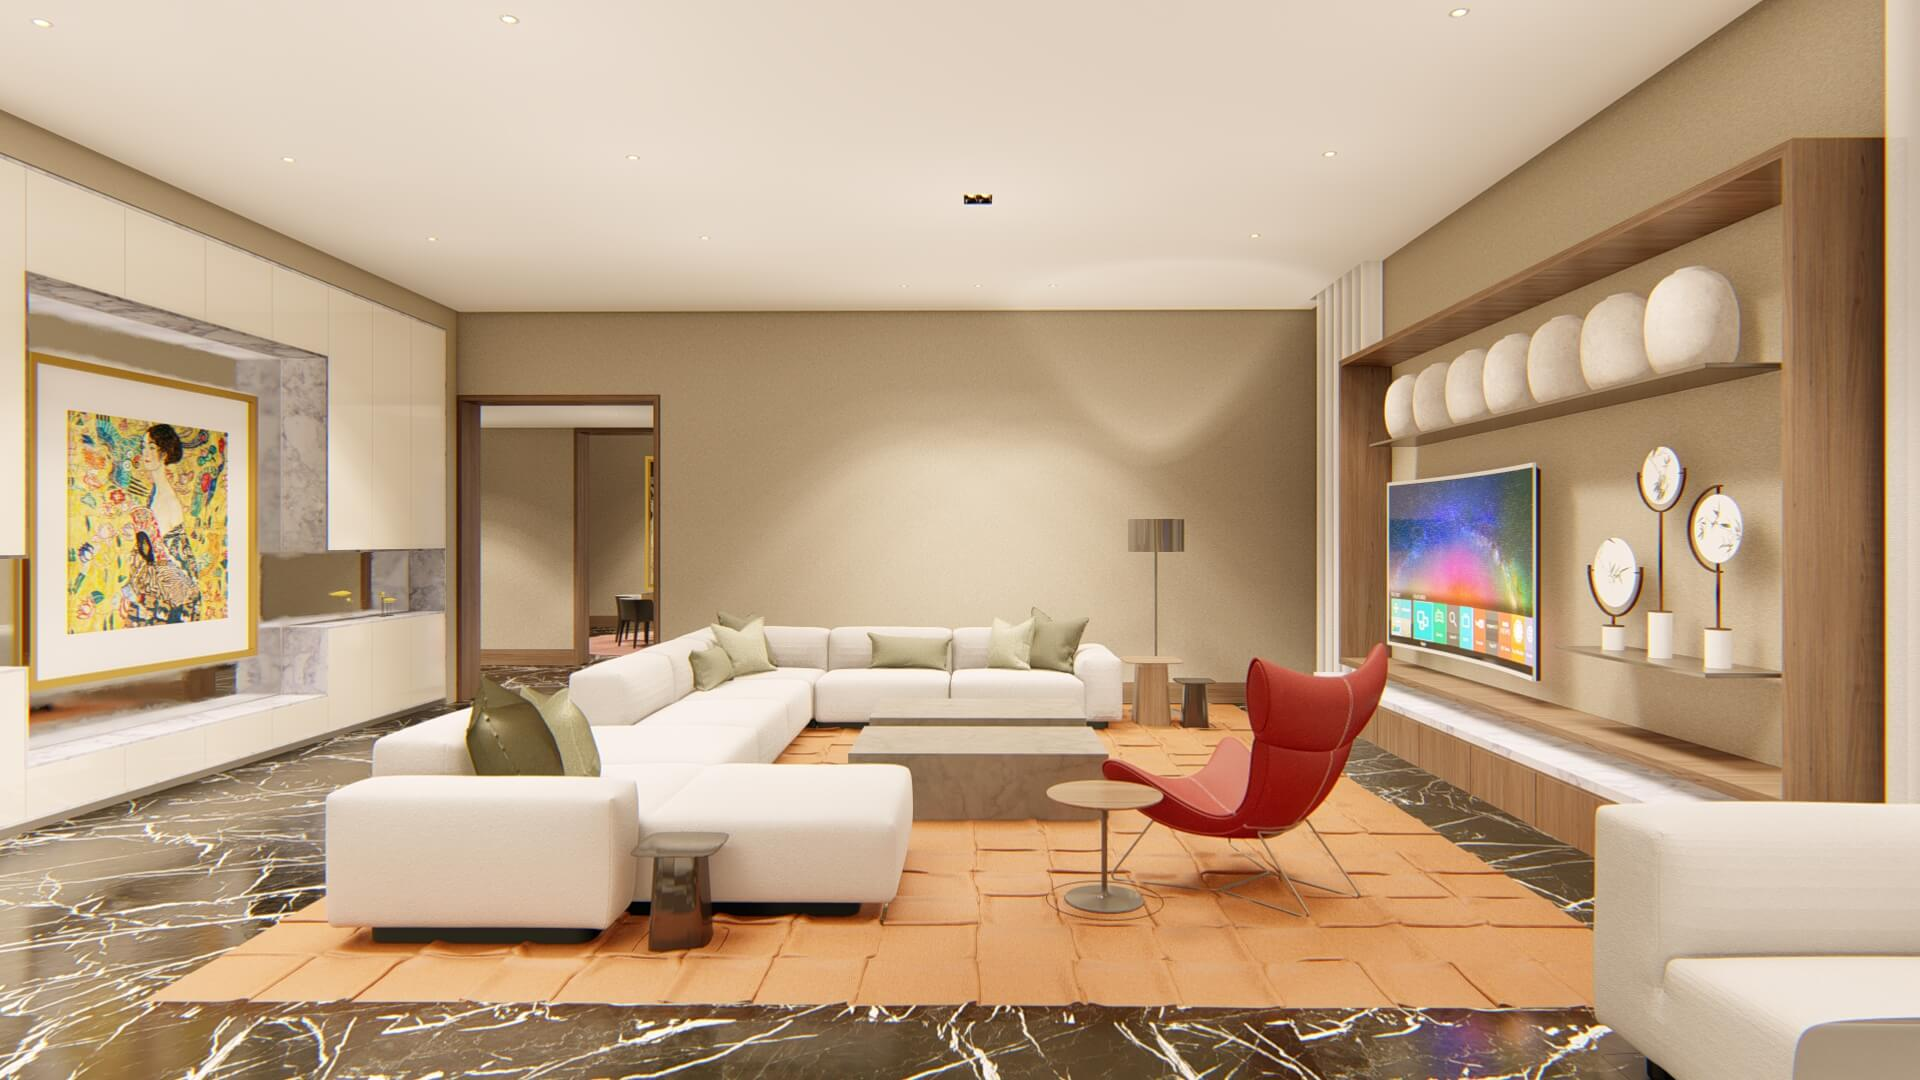 Erisa projects construction and interior design